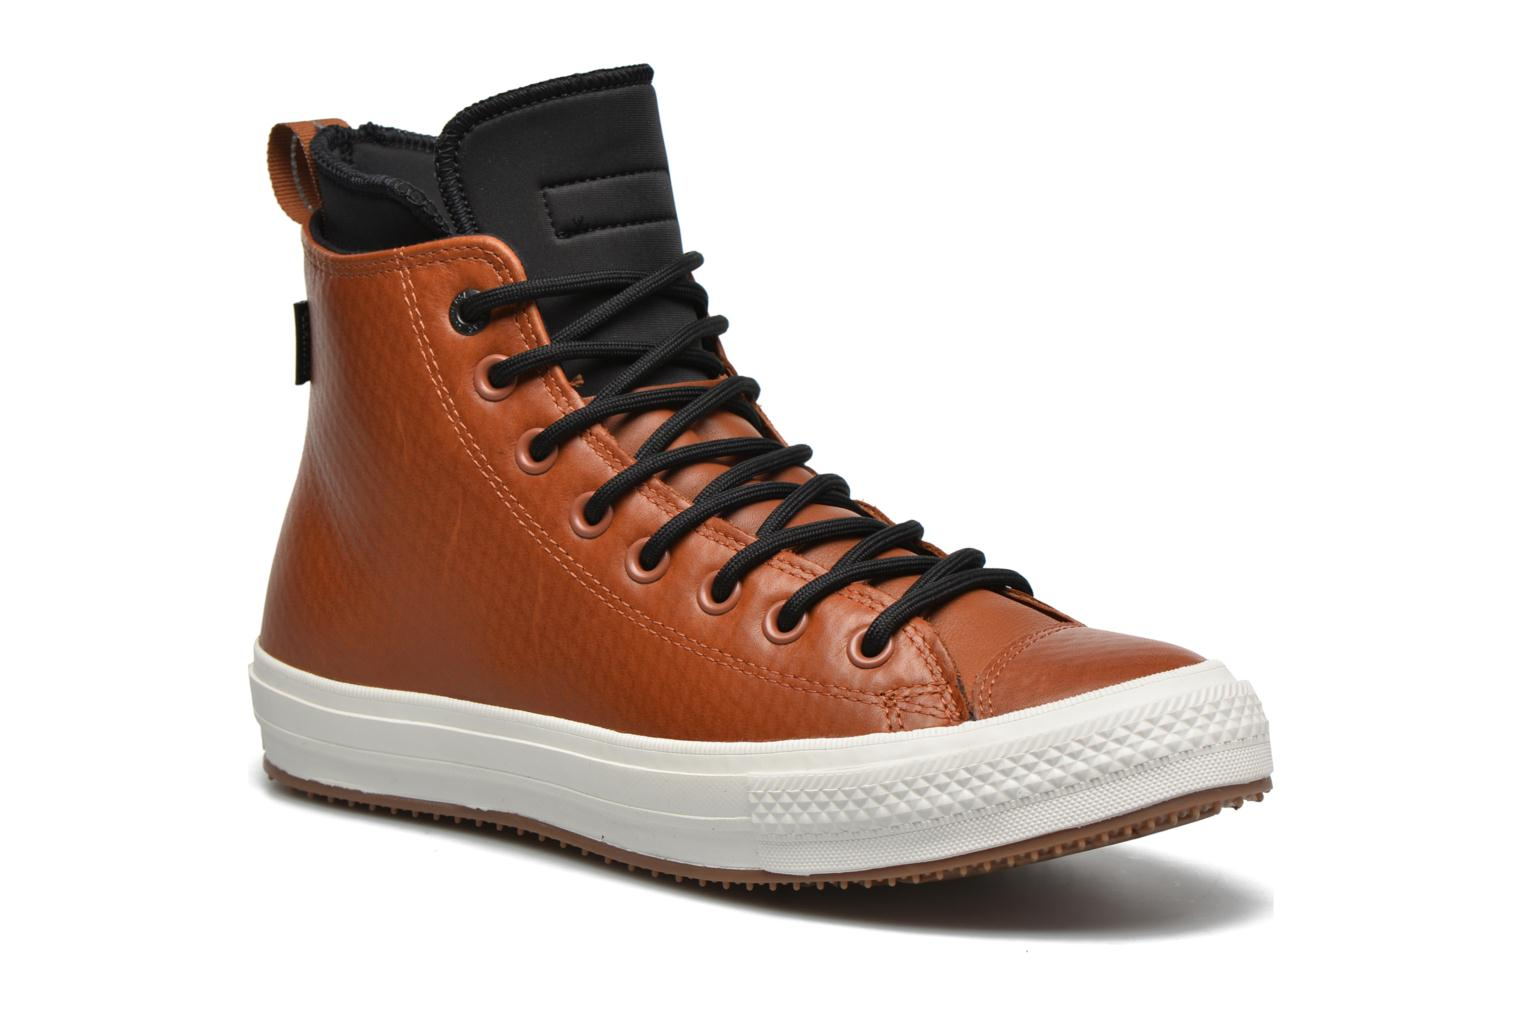 Ctas II Boot Hi M Antique Sepia/Black